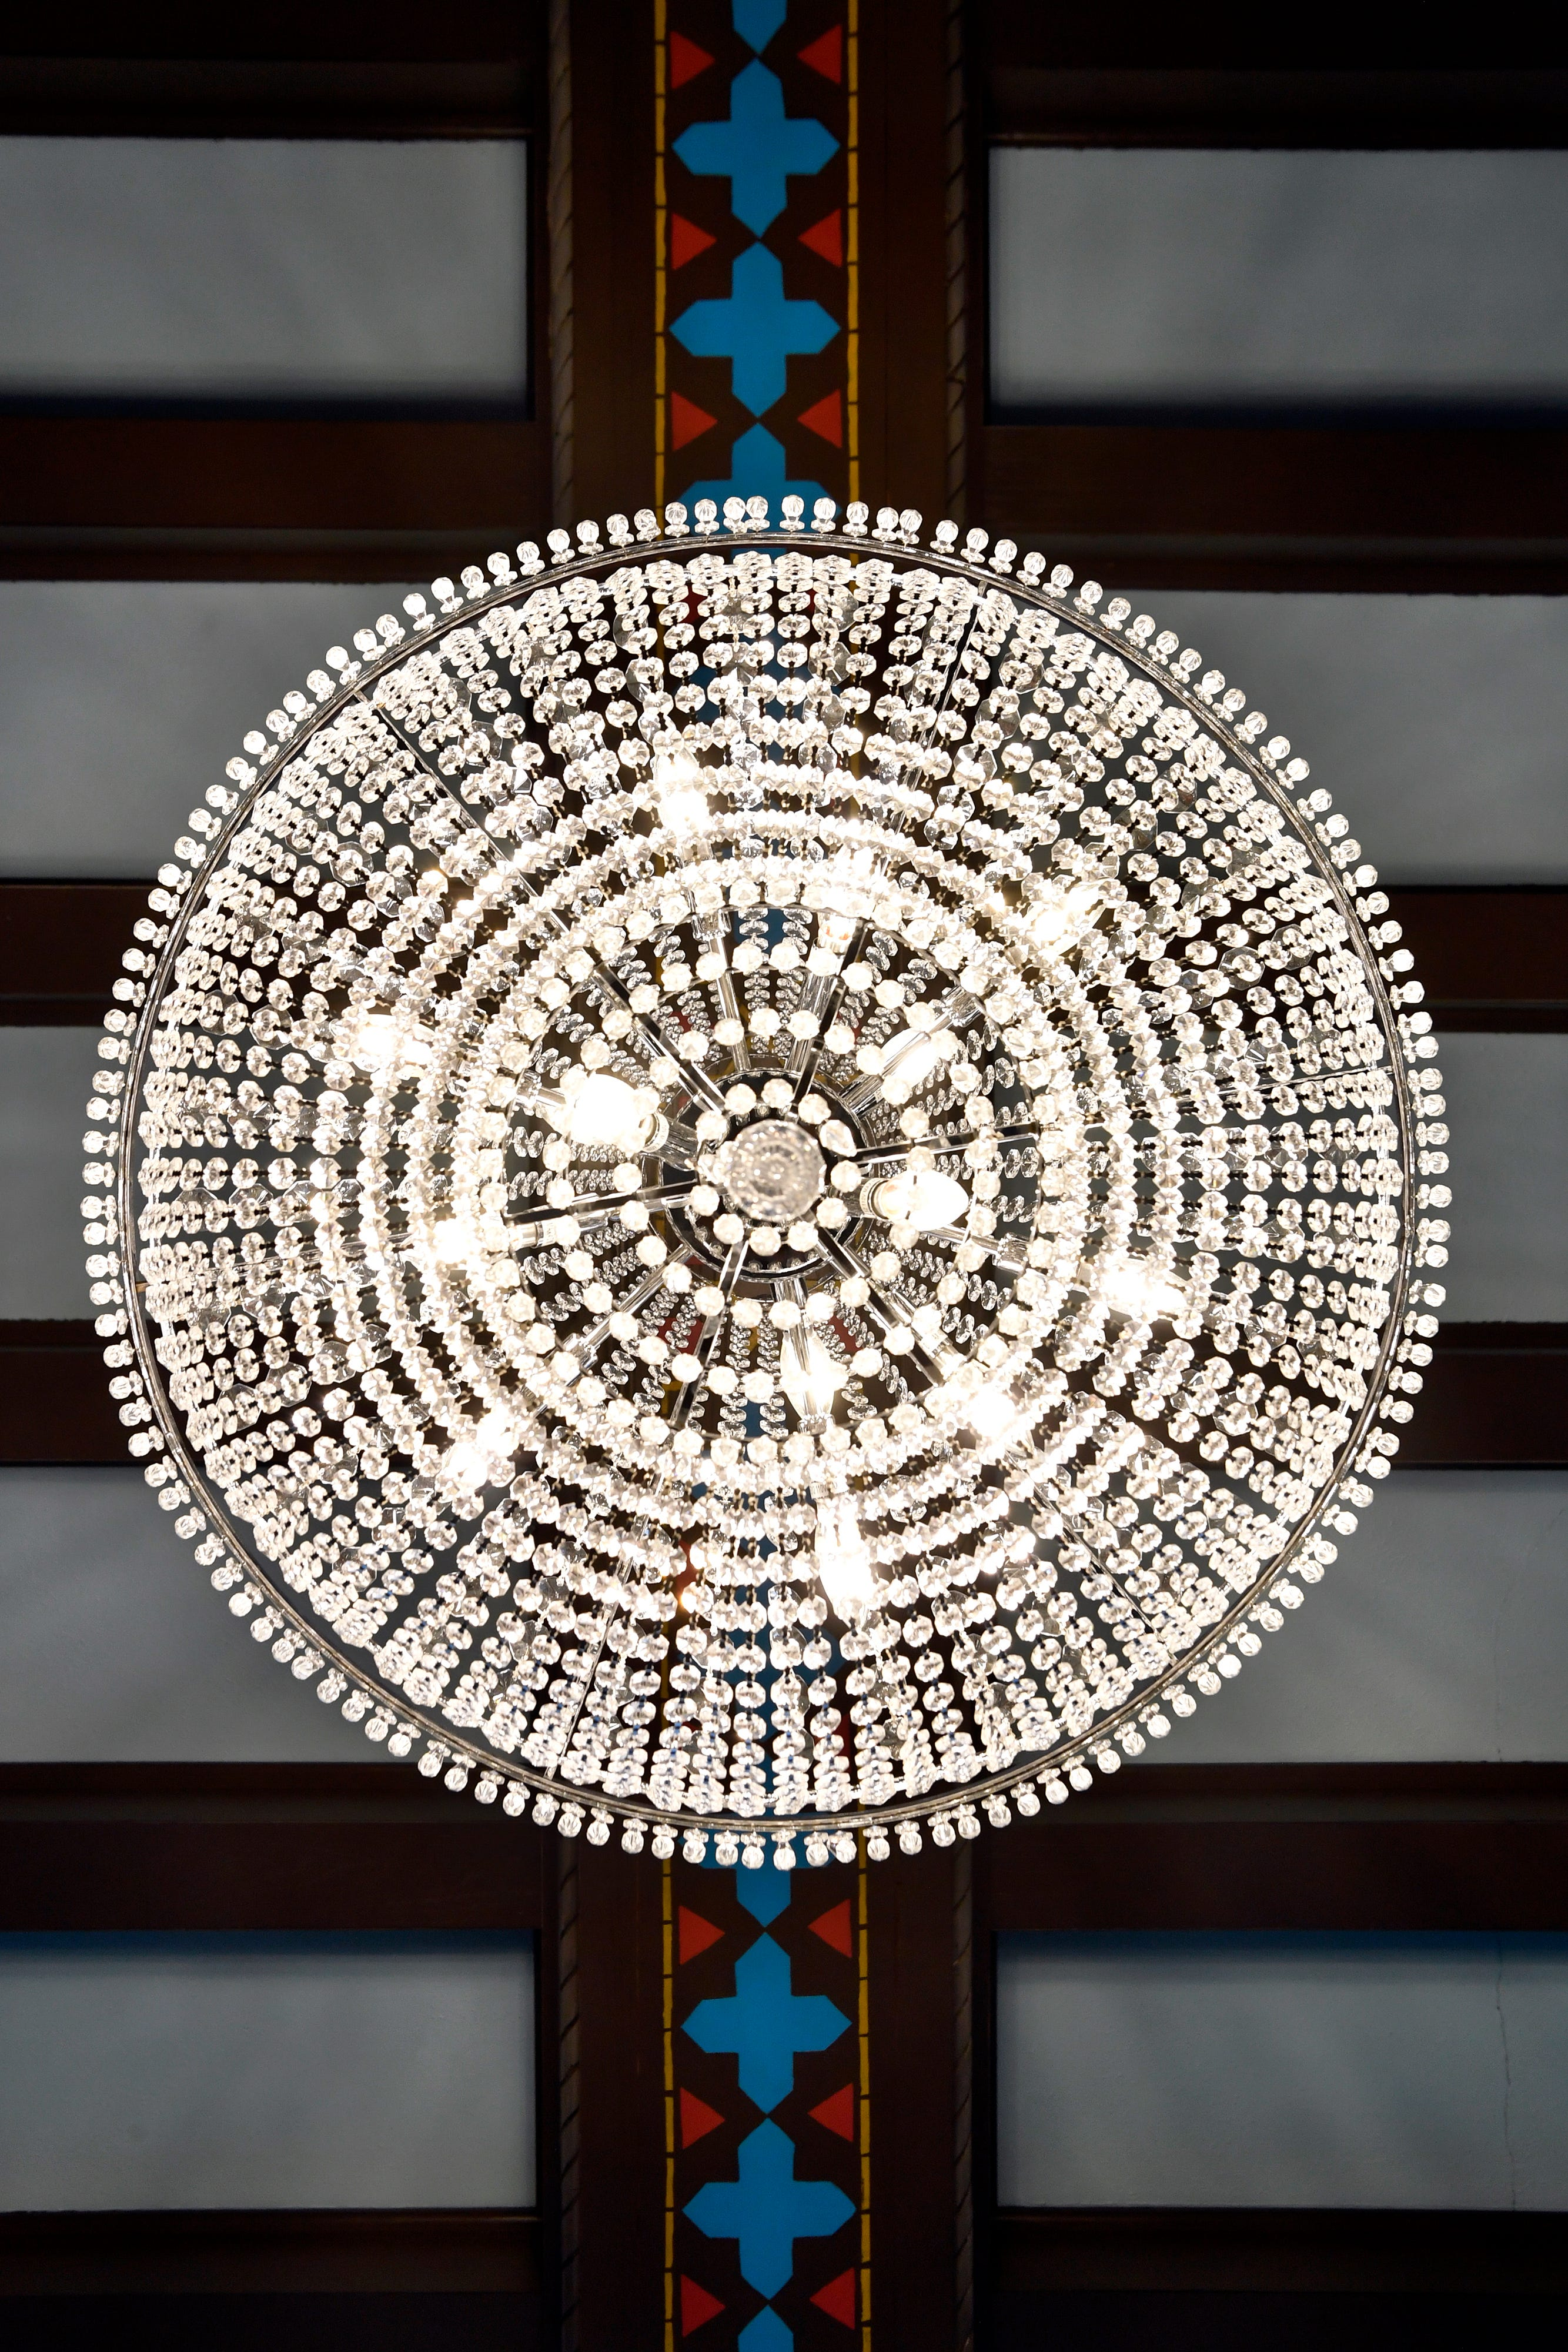 A chandelier hangs from the ceiling in the lobby of the Laguna Hotel Lofts in Cisco.